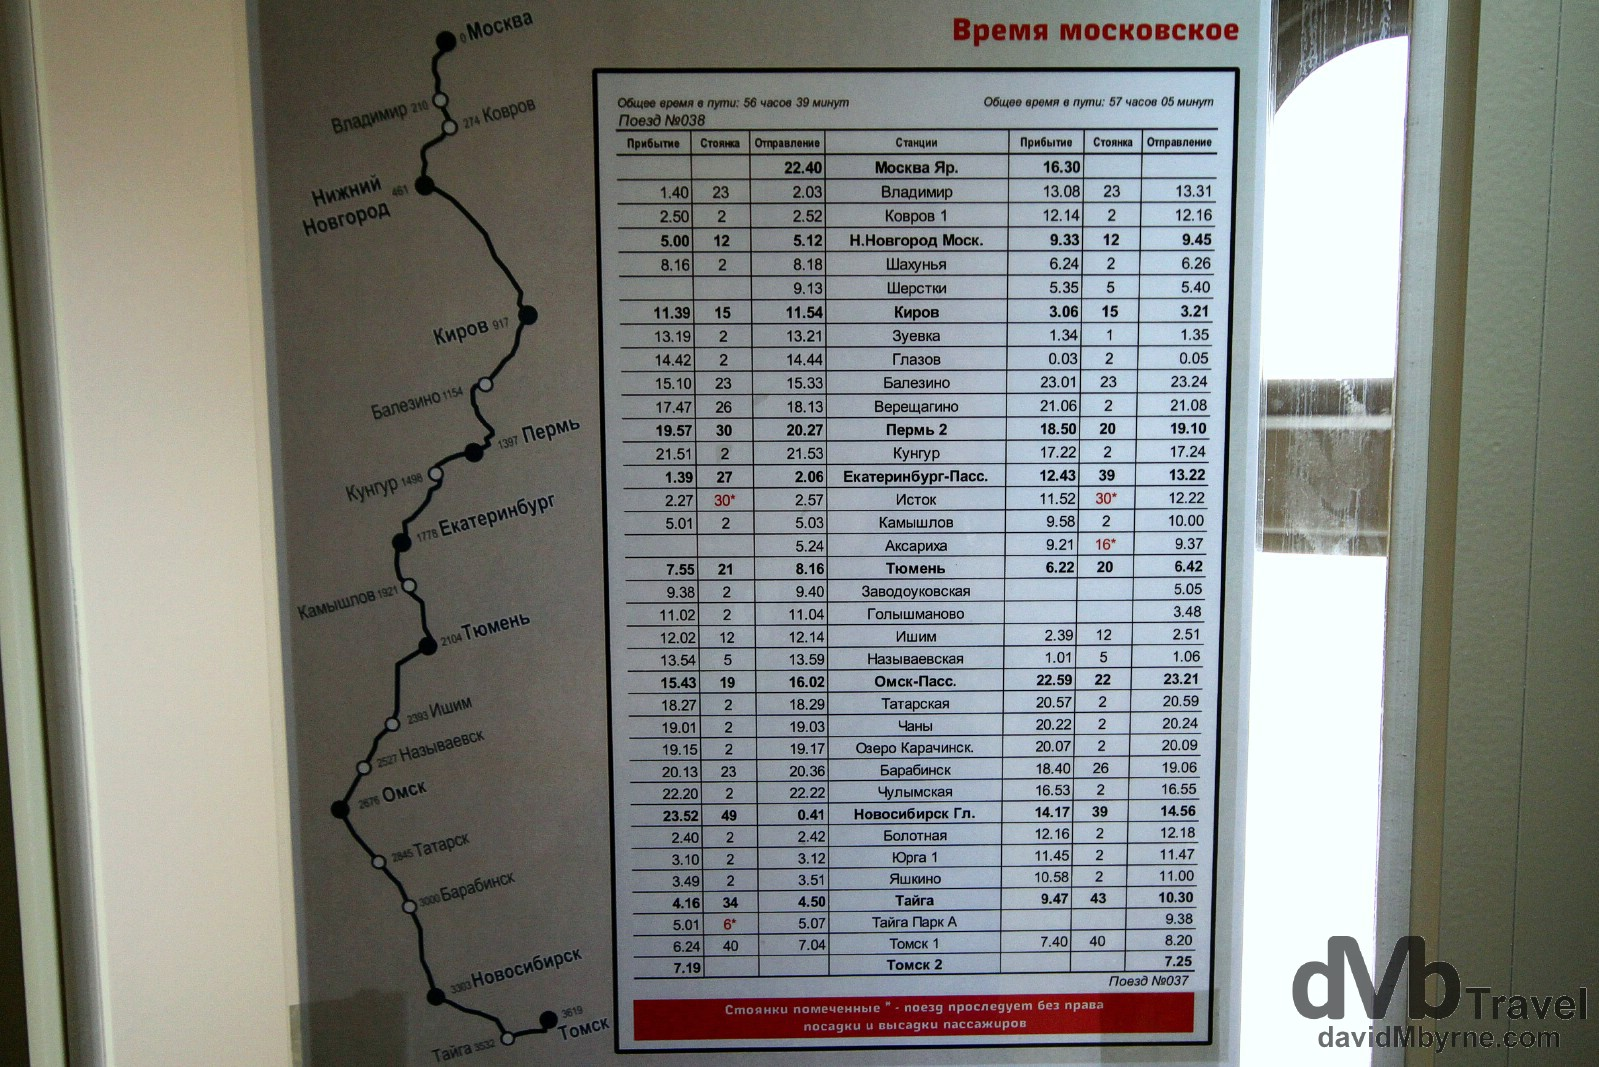 The Trans-Siberian bible - the end of carriage timetable for Train 38's 3,619 kilometre trip from Tomsk in Siberian Russia to Moscow.